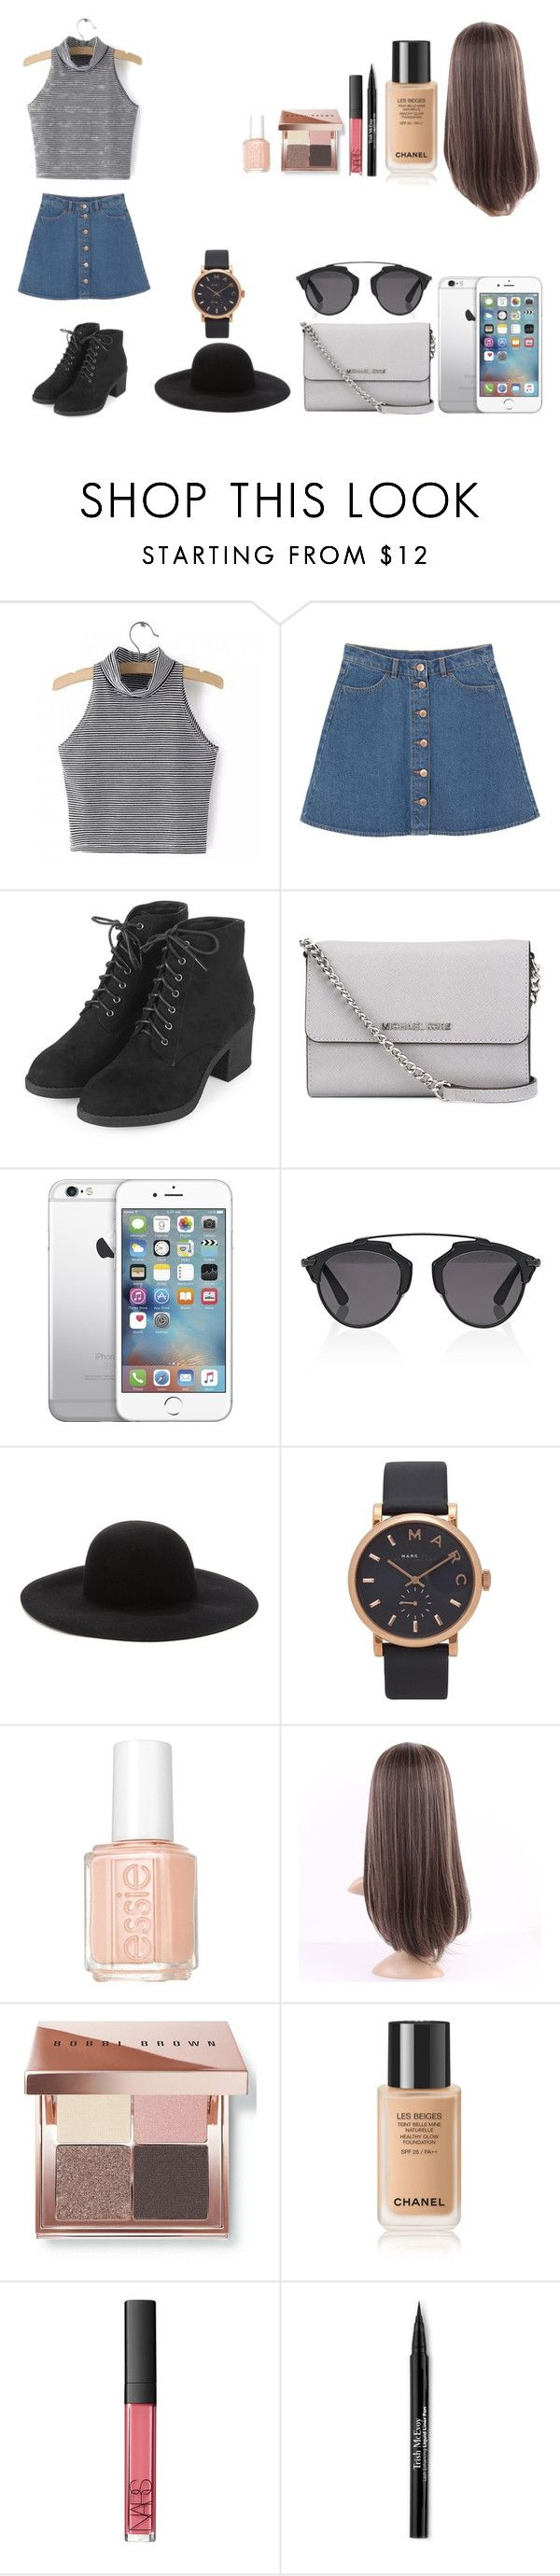 """""""Untitled #481"""" by kalieh092 on Polyvore featuring Monki, Topshop, MICHAEL Michael Kors, Christian Dior, Forever 21, Marc Jacobs, Essie, Bobbi Brown Cosmetics, NARS Cosmetics and Trish McEvoy"""